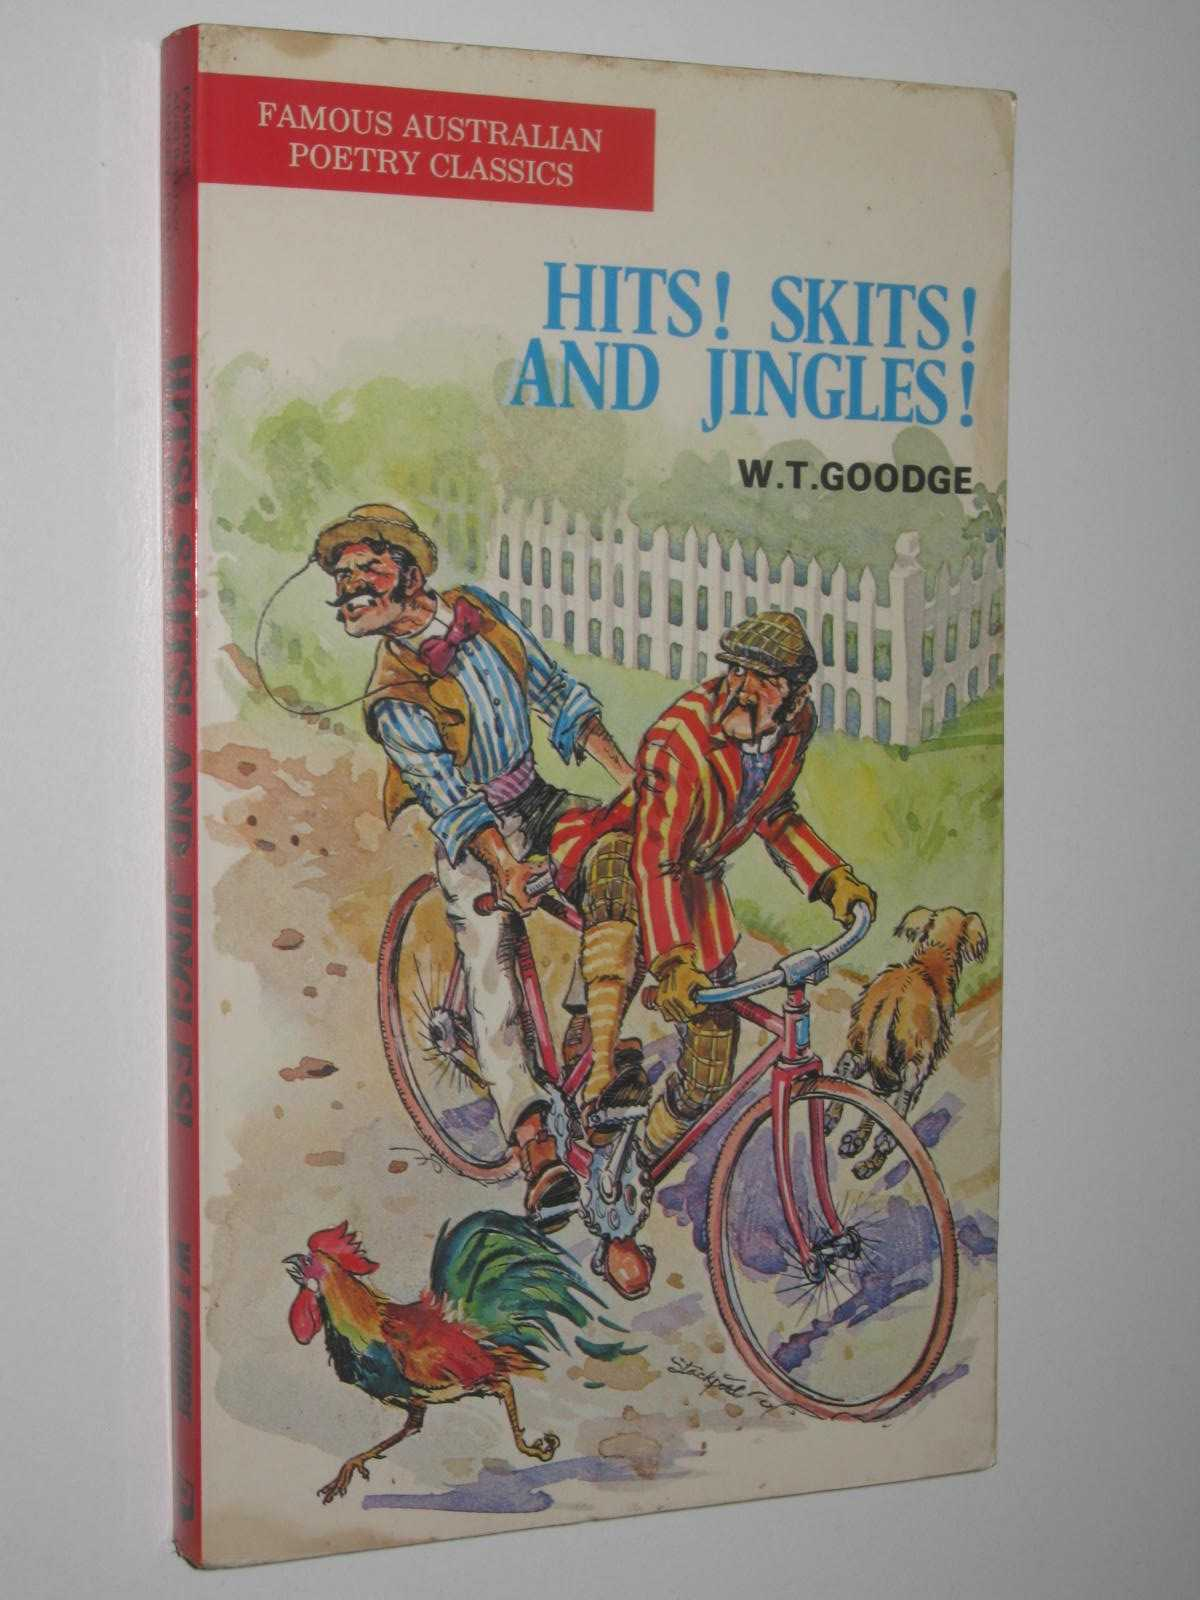 Image for Hits! Skits! and Jingles! - Famous Australian Poetry Classics Series